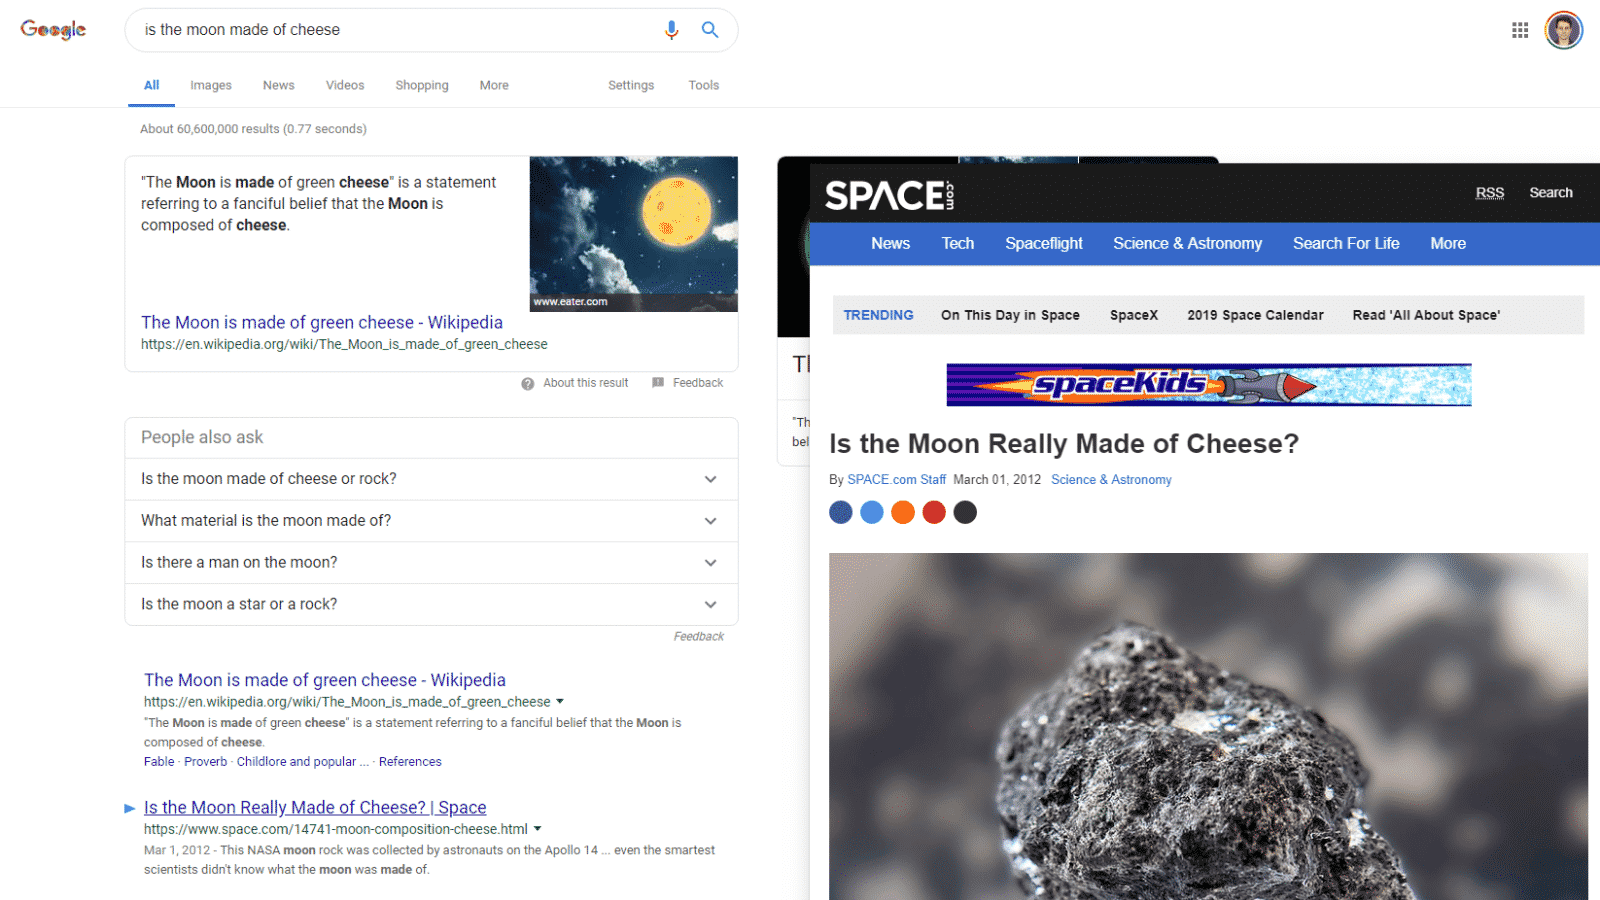 google results previewer extension in action